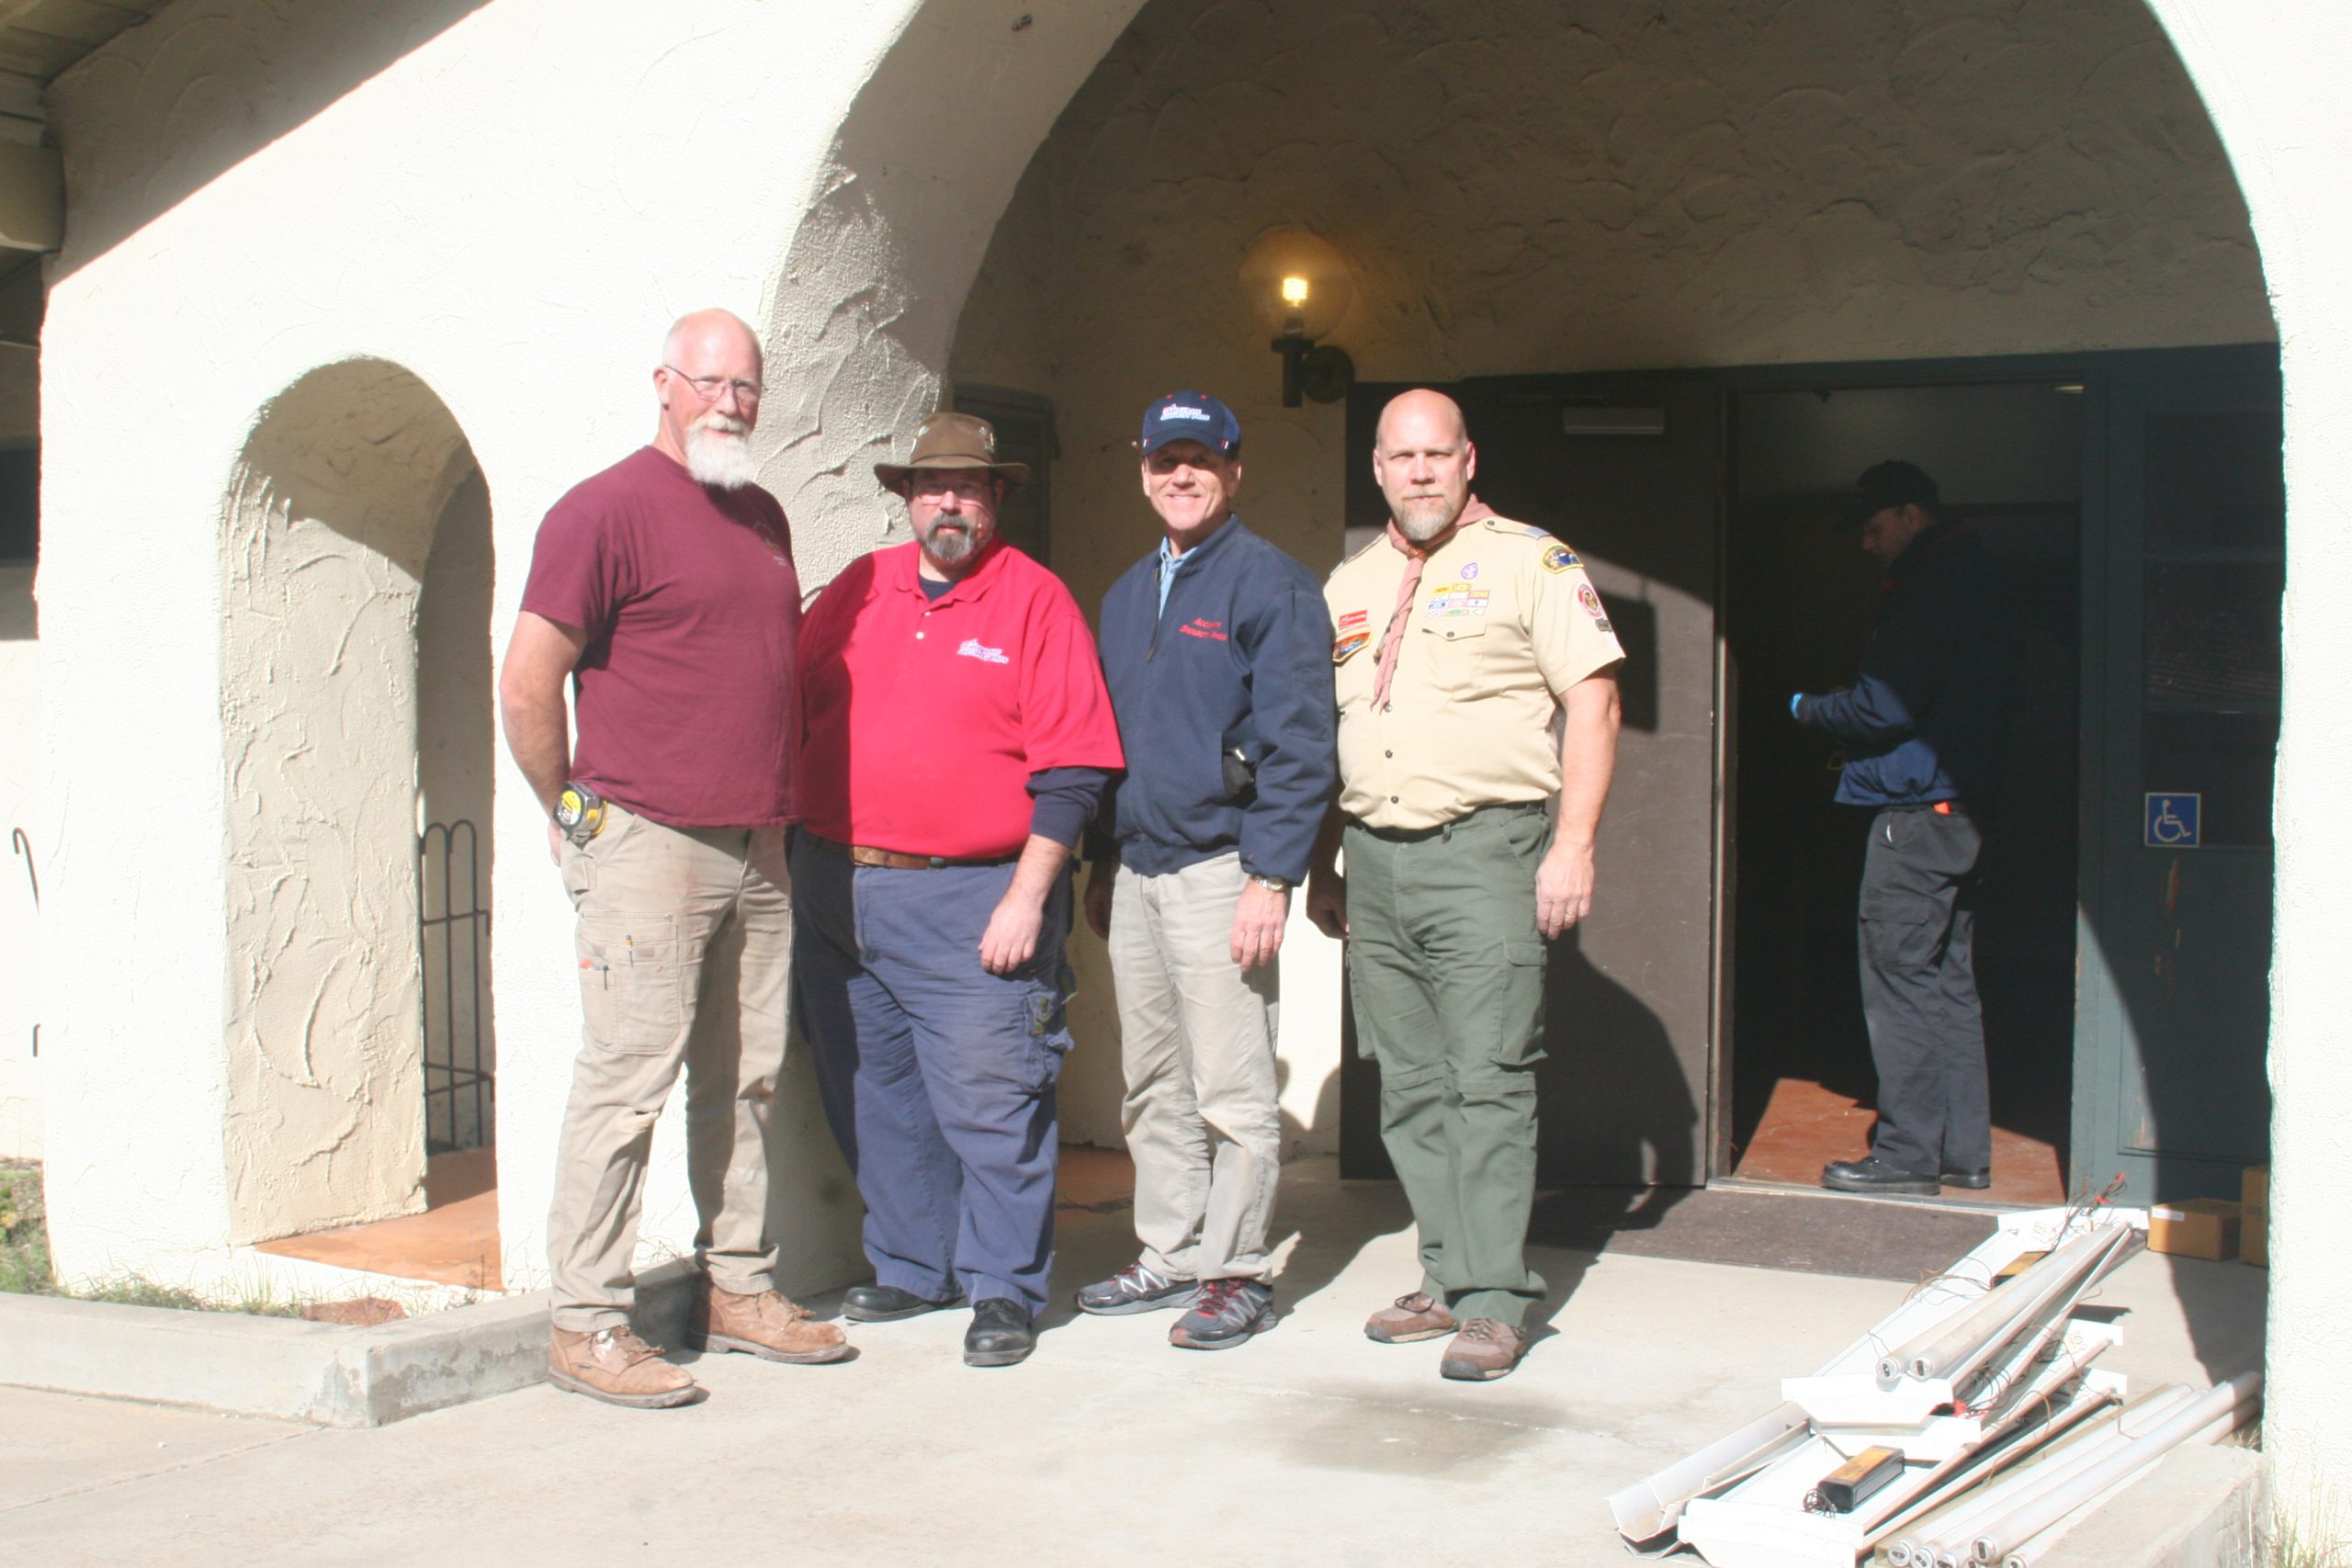 The Team Accurate Security Pros and Mataguay Scout Ranch